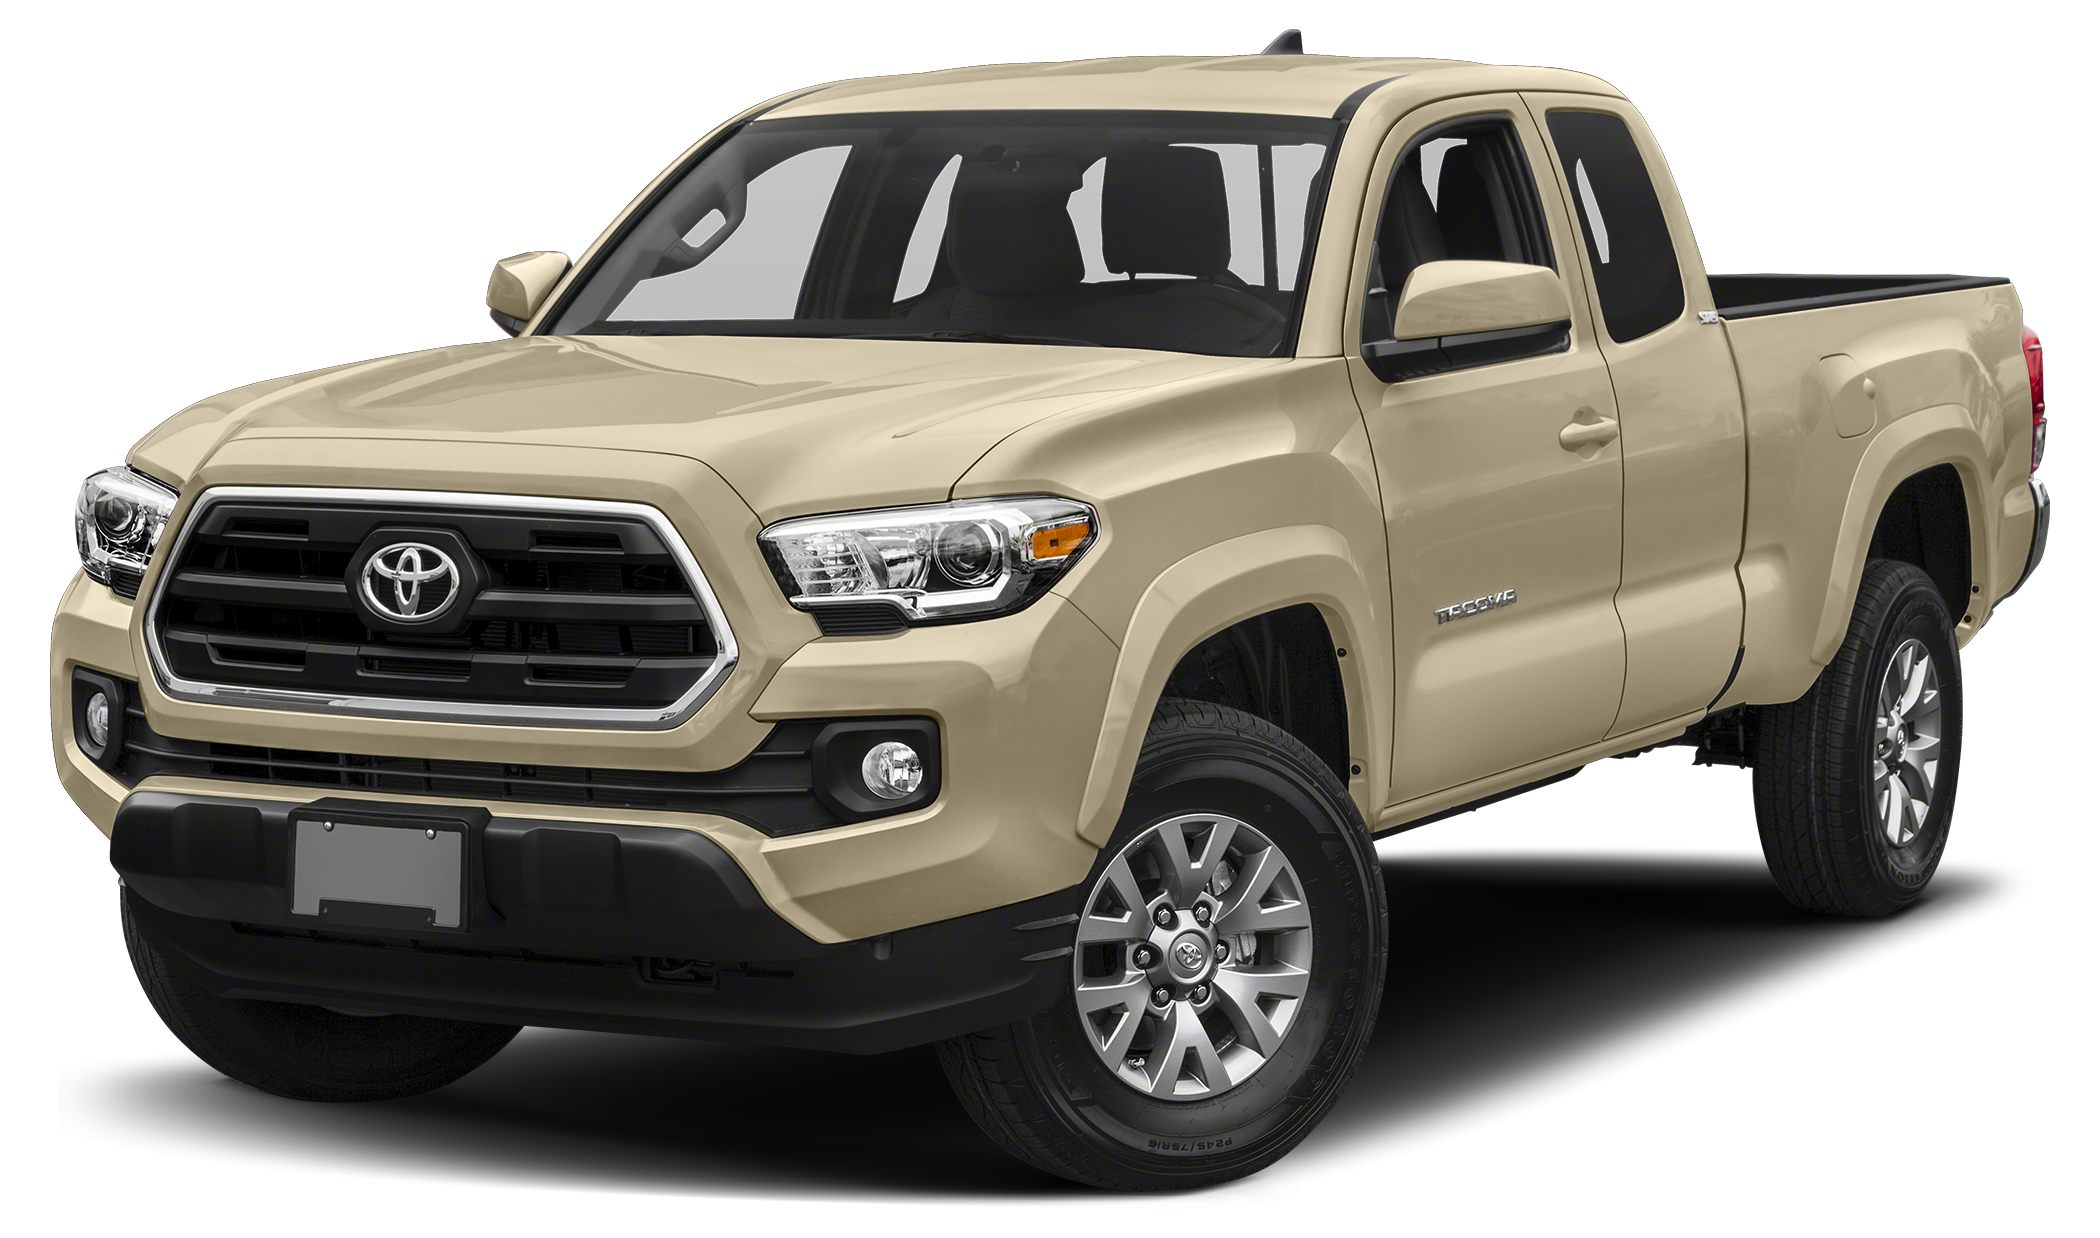 2017 Toyota Tacoma SR5 IPodMP3 Input Bluetooth CD Player Tow Hitch TOW PACKAGE HARD TRI-FOLD